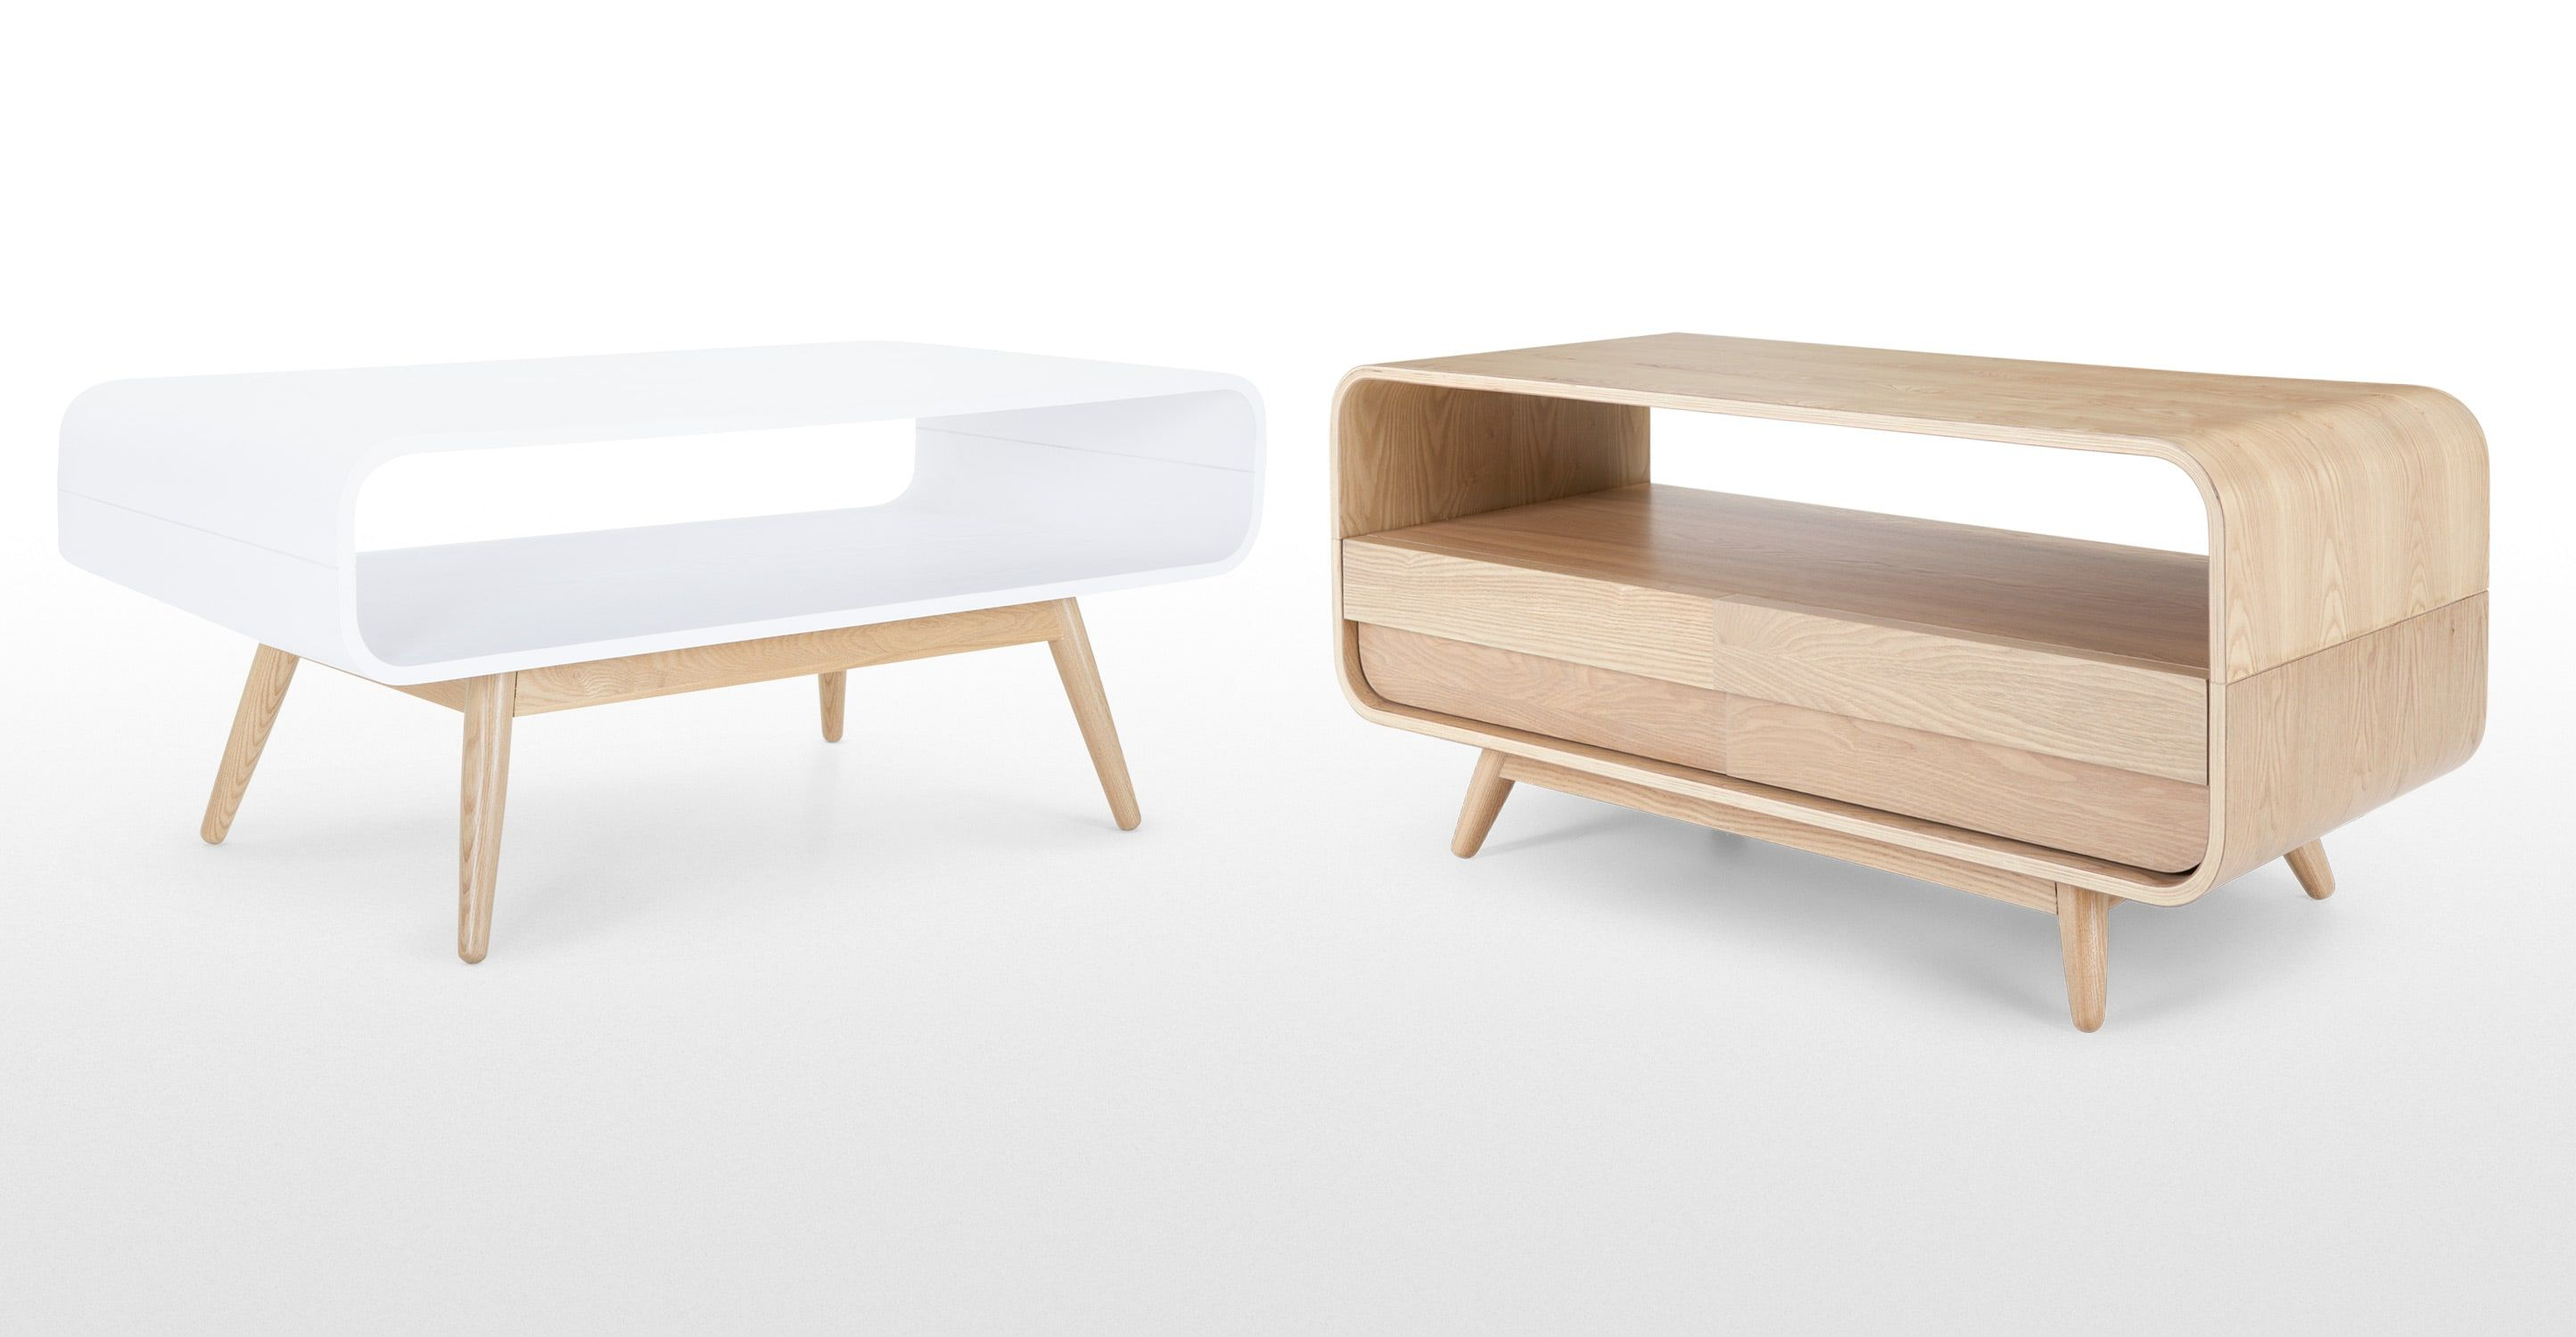 Esme compact media unit ash from made light wood you can esme compact media unit ash from made light wood you can try not to be charmed by the esme collection but with those rounded edges and splay geotapseo Images